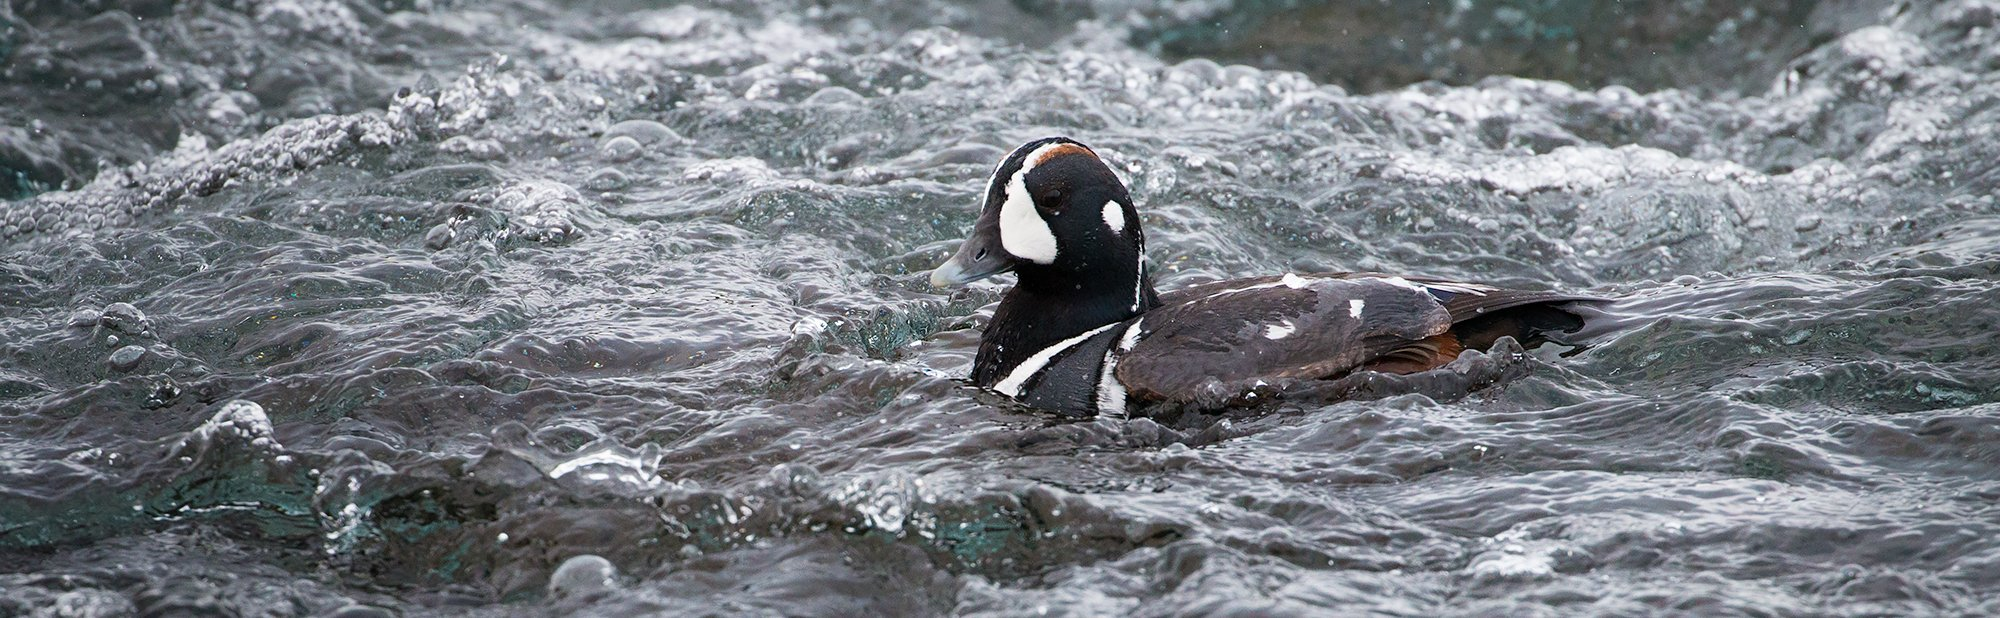 Harlequin Duck in Iceland